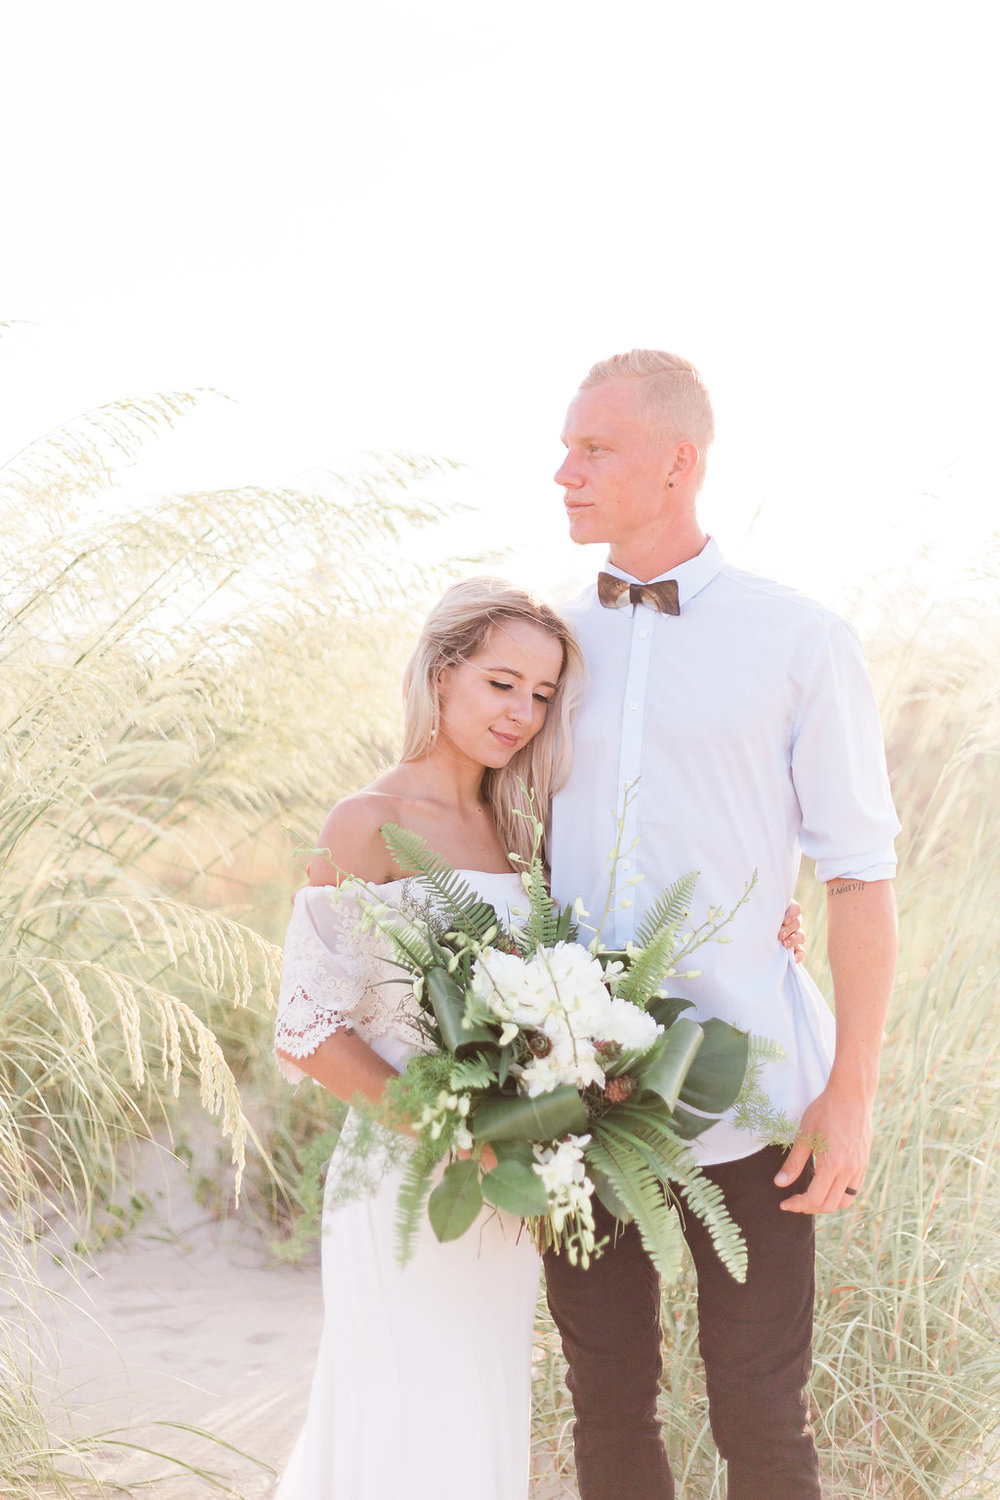 savannah-bridal-shop-last-minute-wedding-planning-details-you-should-start-on-NOW-bluebell-photography-daughters-of-simone-tybee-island-wedding-15.jpg